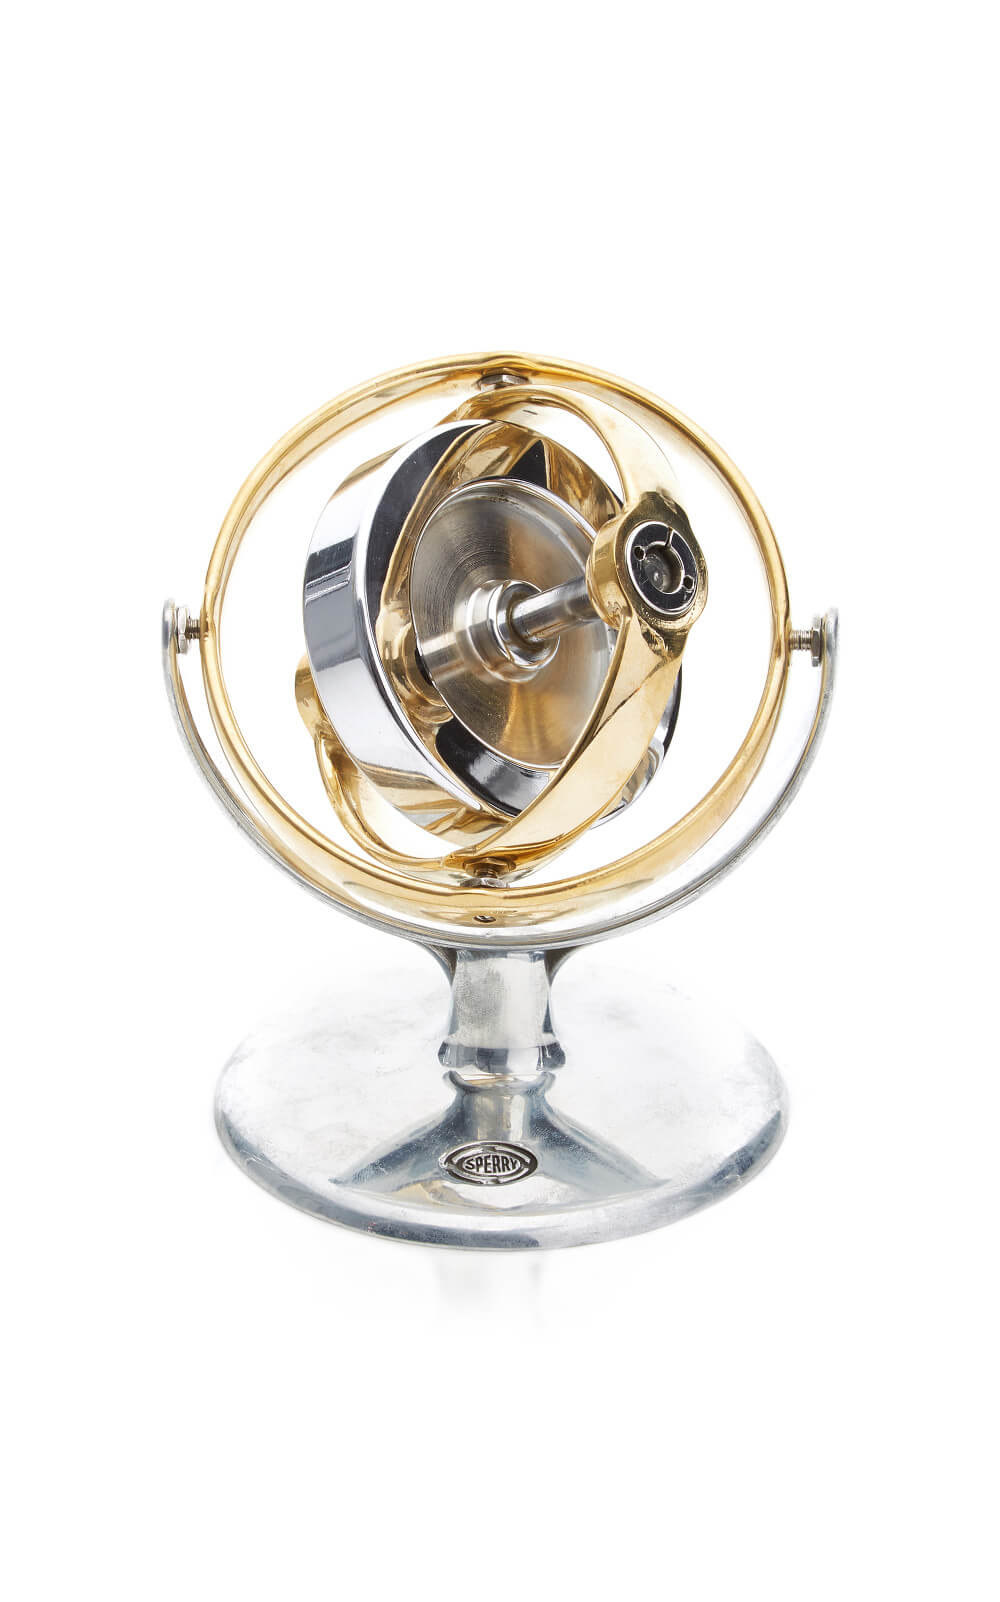 Polished Aluminum And Brass Gyroscope - Mantiques Modern